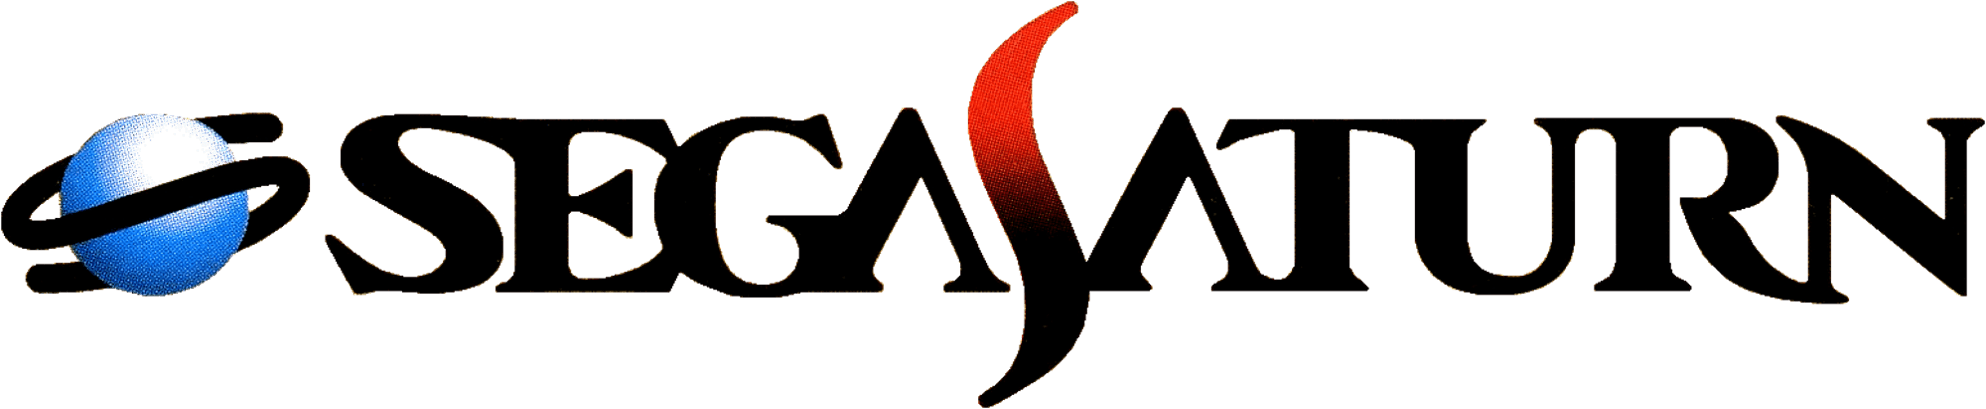 Saturn Logo - File:SEGA Saturn logo.png - Wikimedia Commons